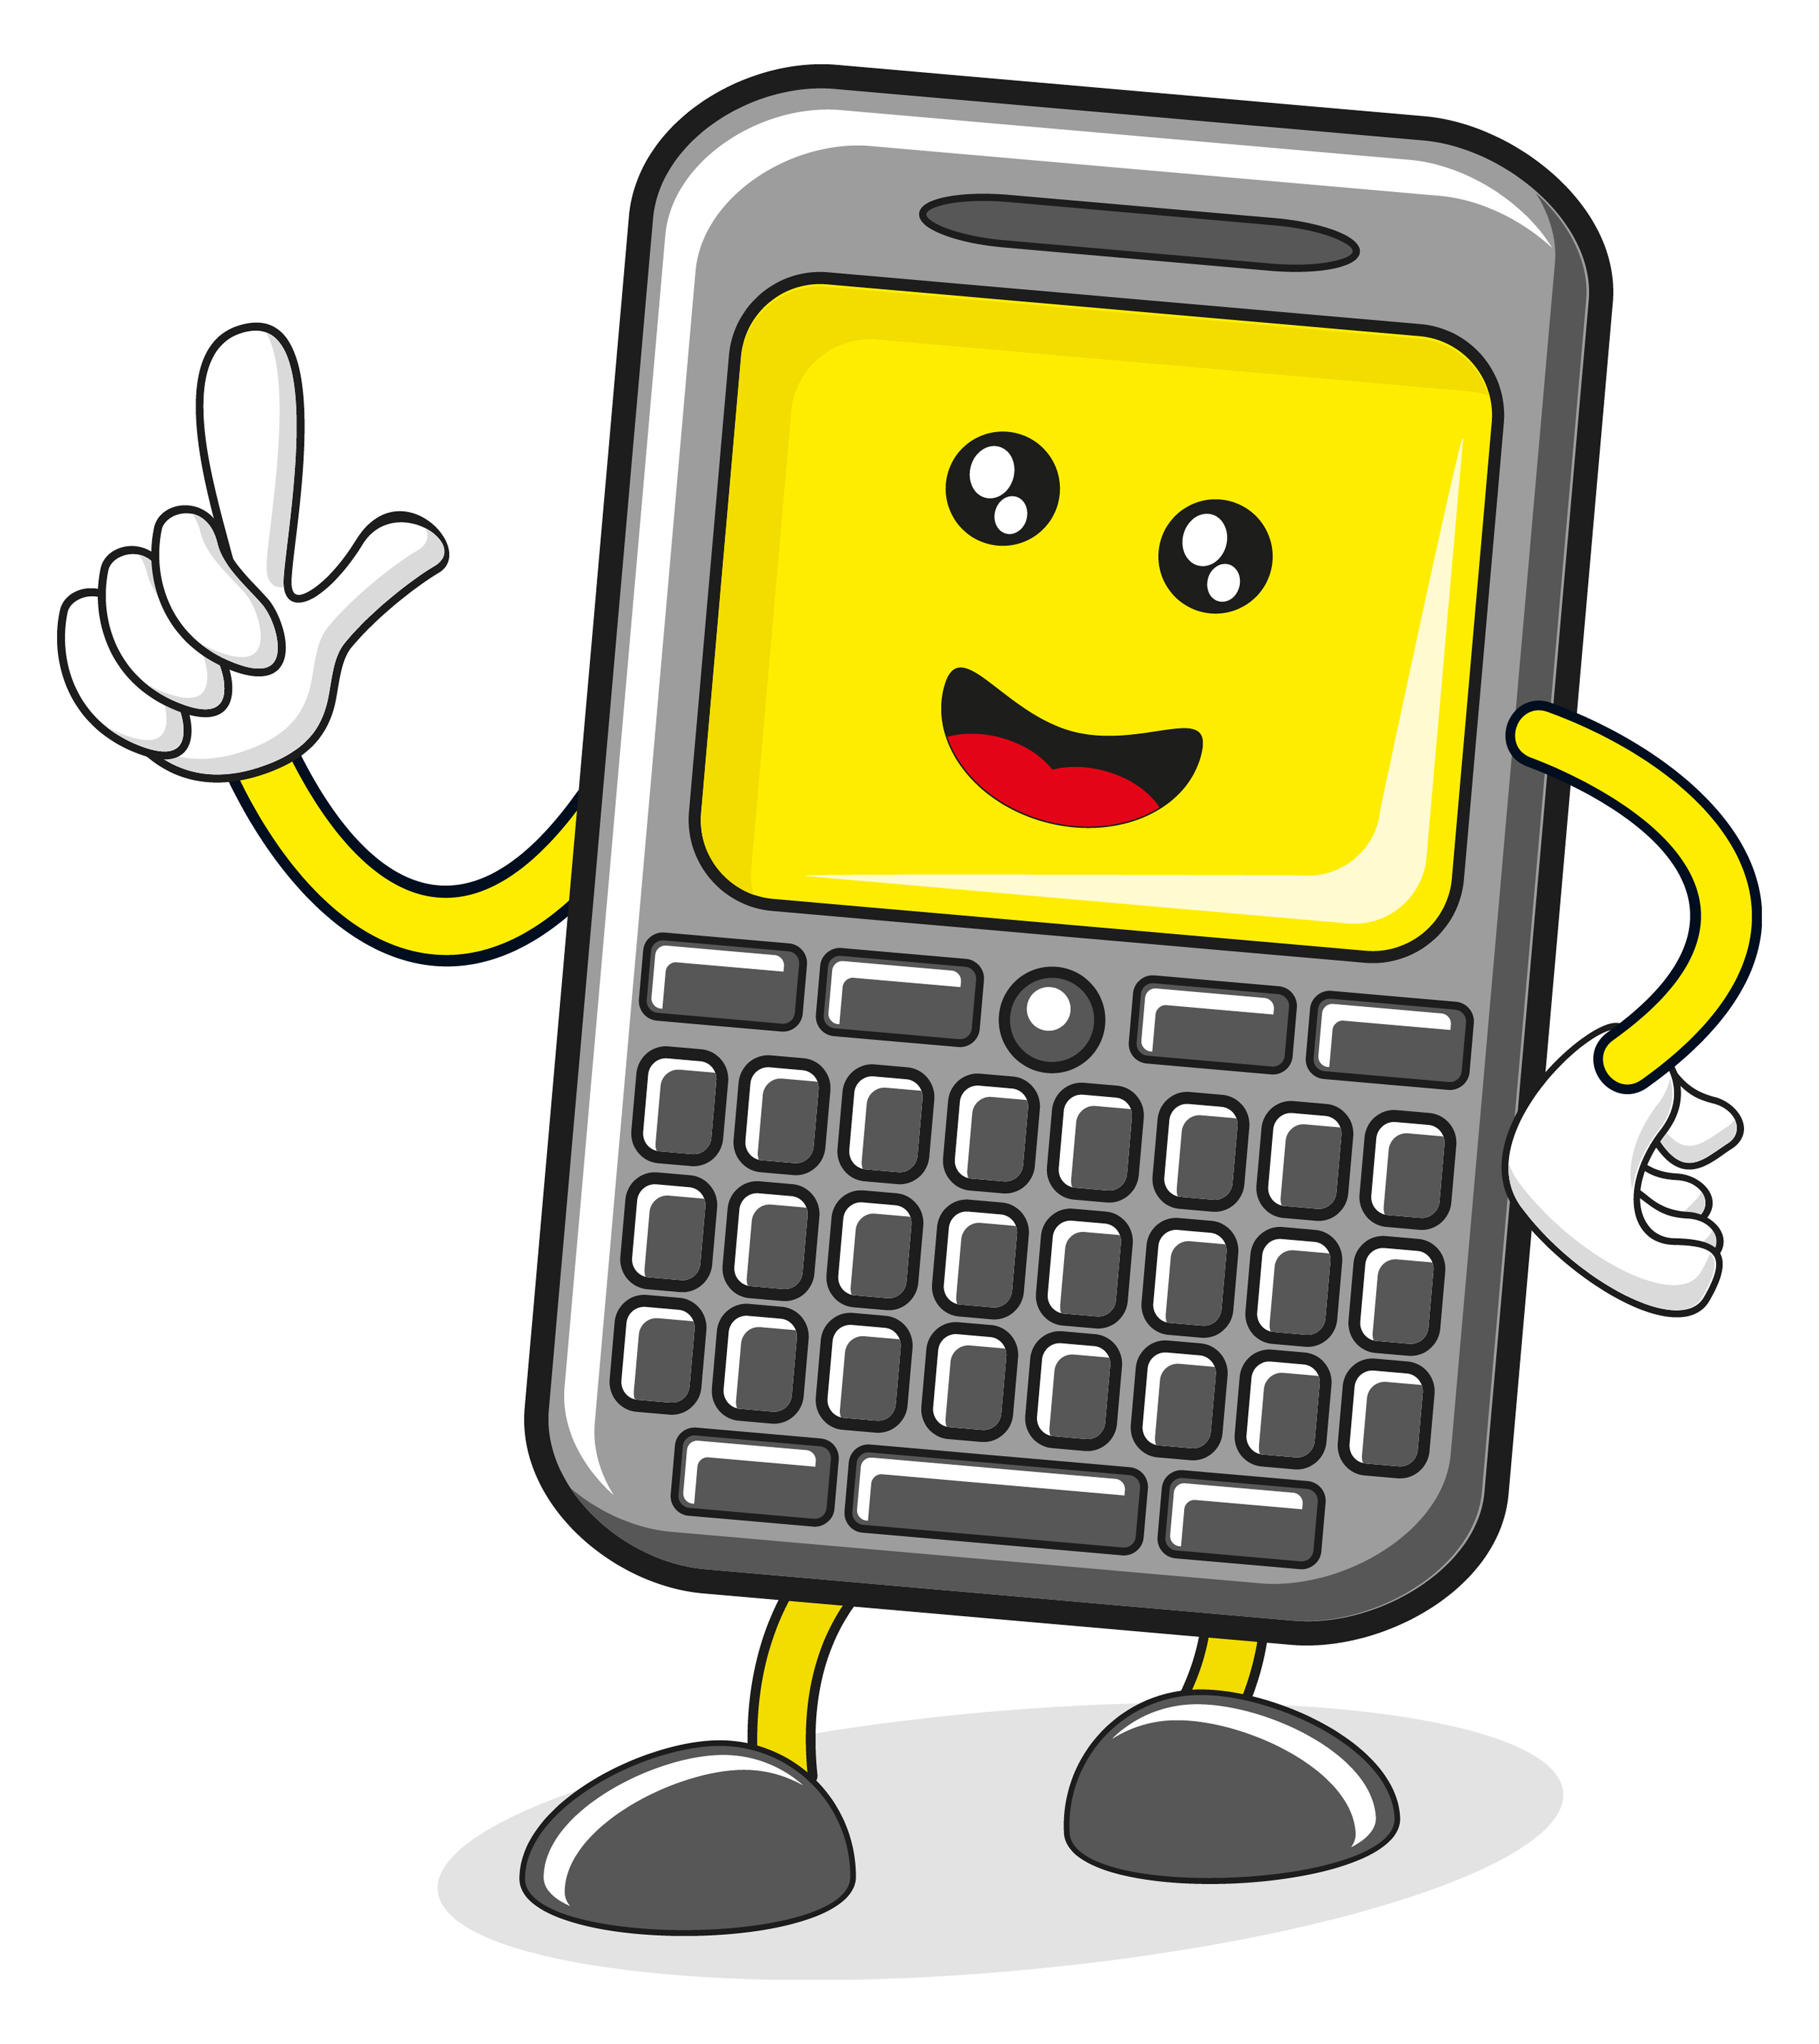 Phone clipart animated #2